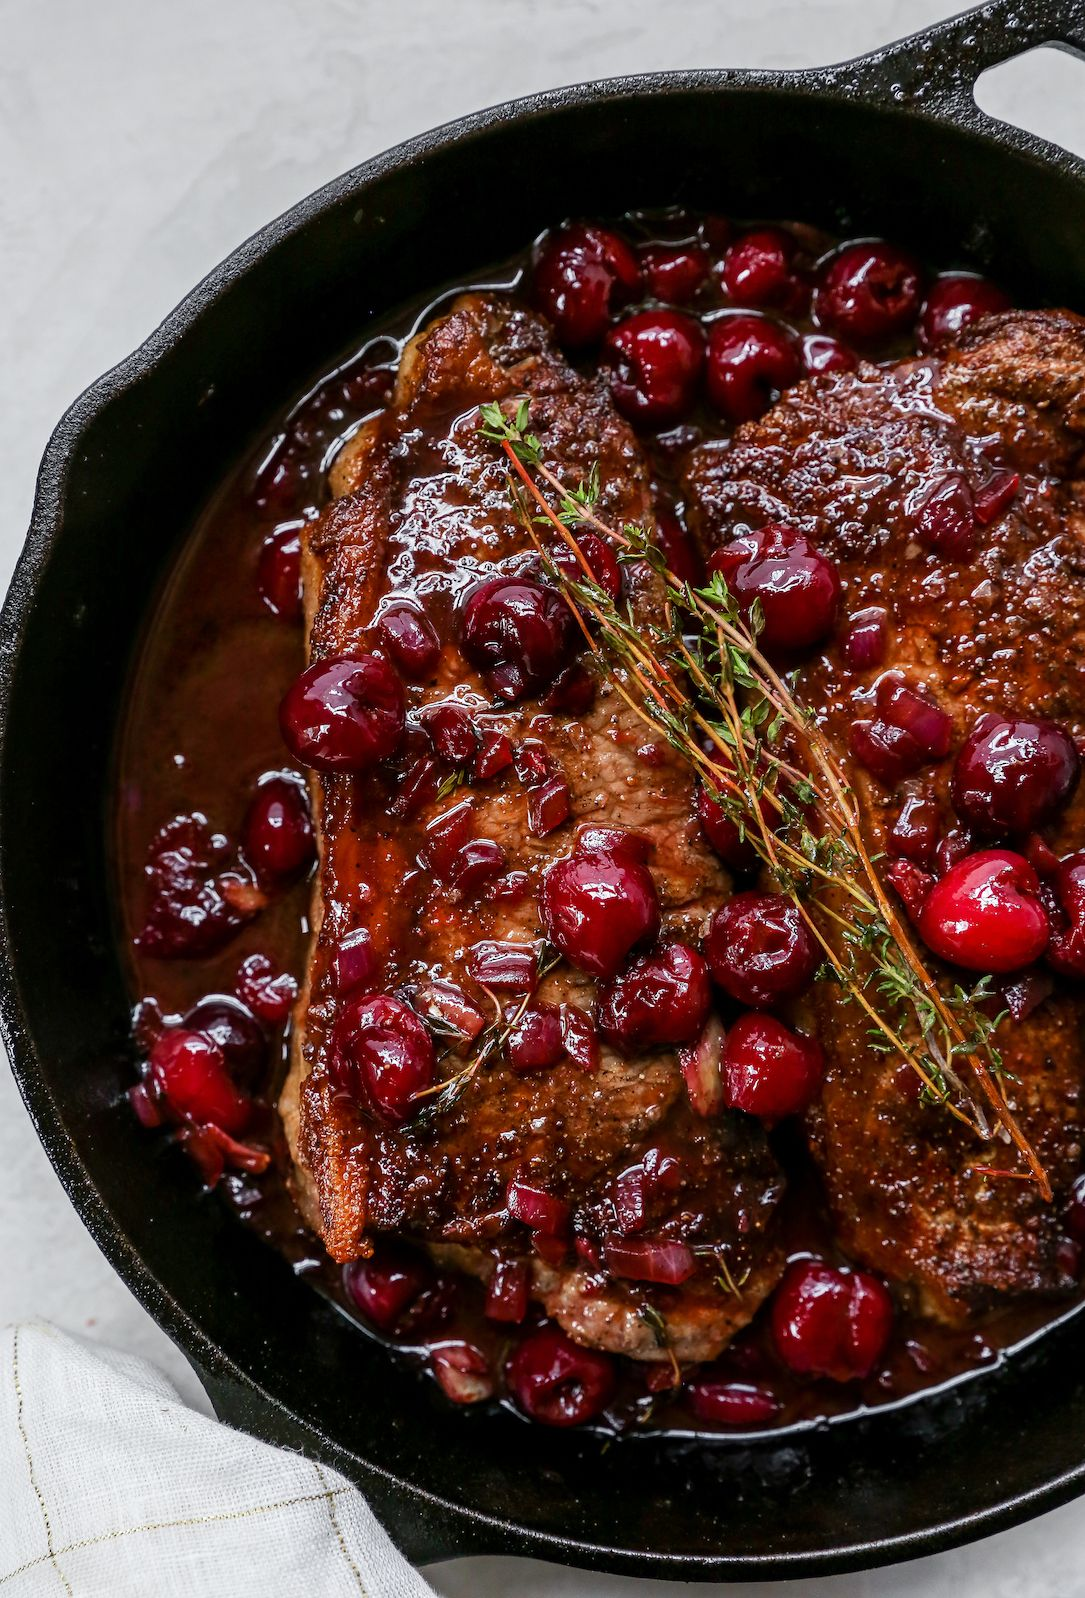 Steaks With Fresh Cherry Sauce Recipe In 2020 Cherry Sauce Fresh Cherries Balsamic Steak